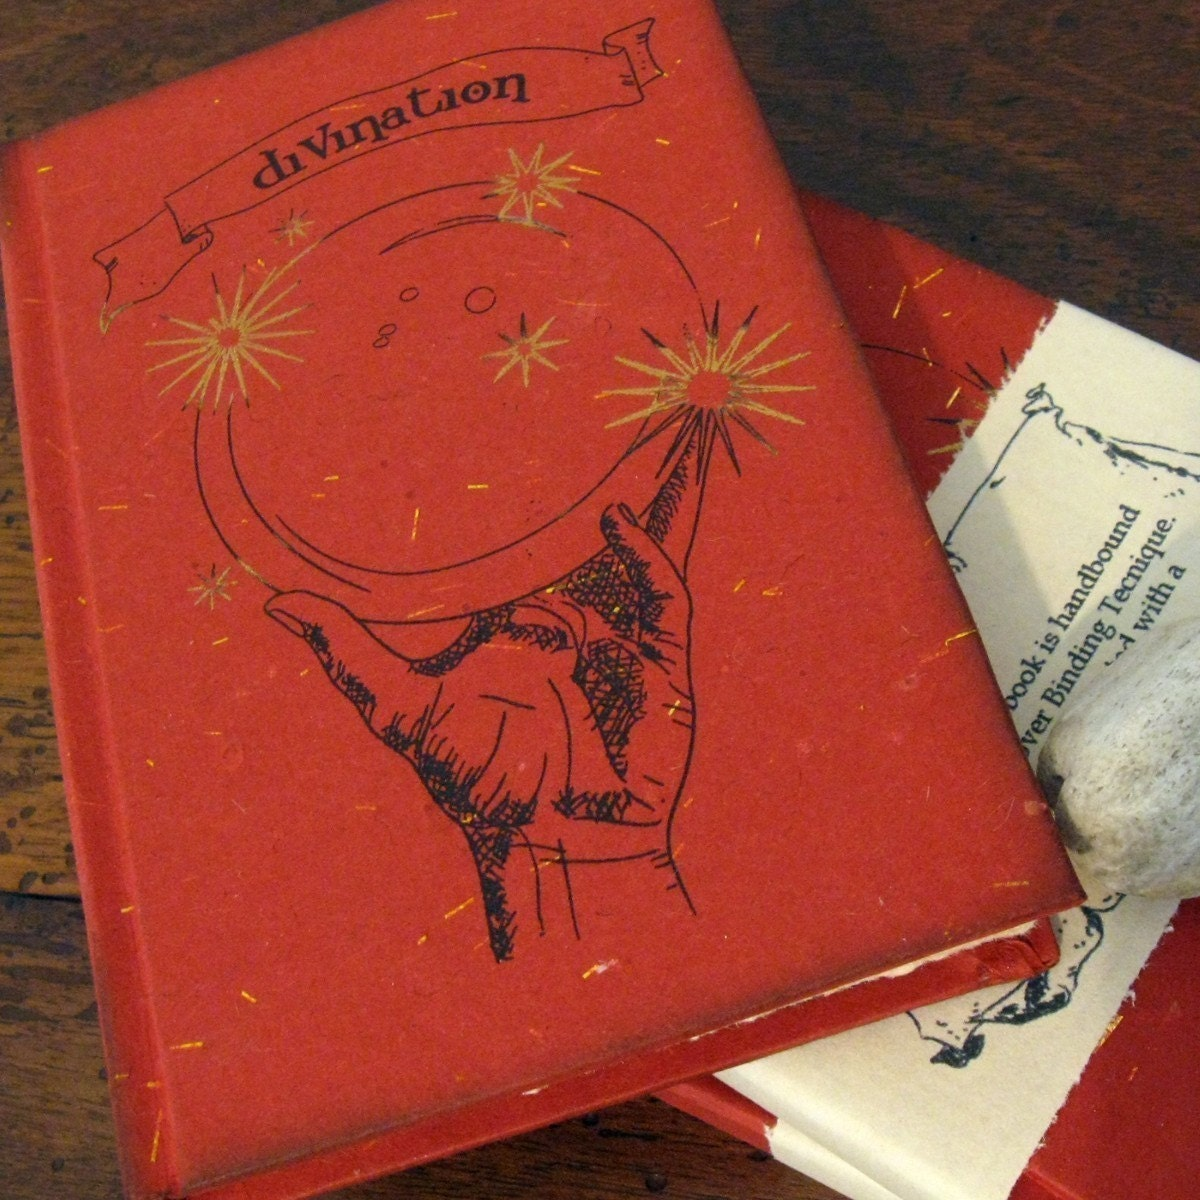 NEW LINE - Divination Notebook